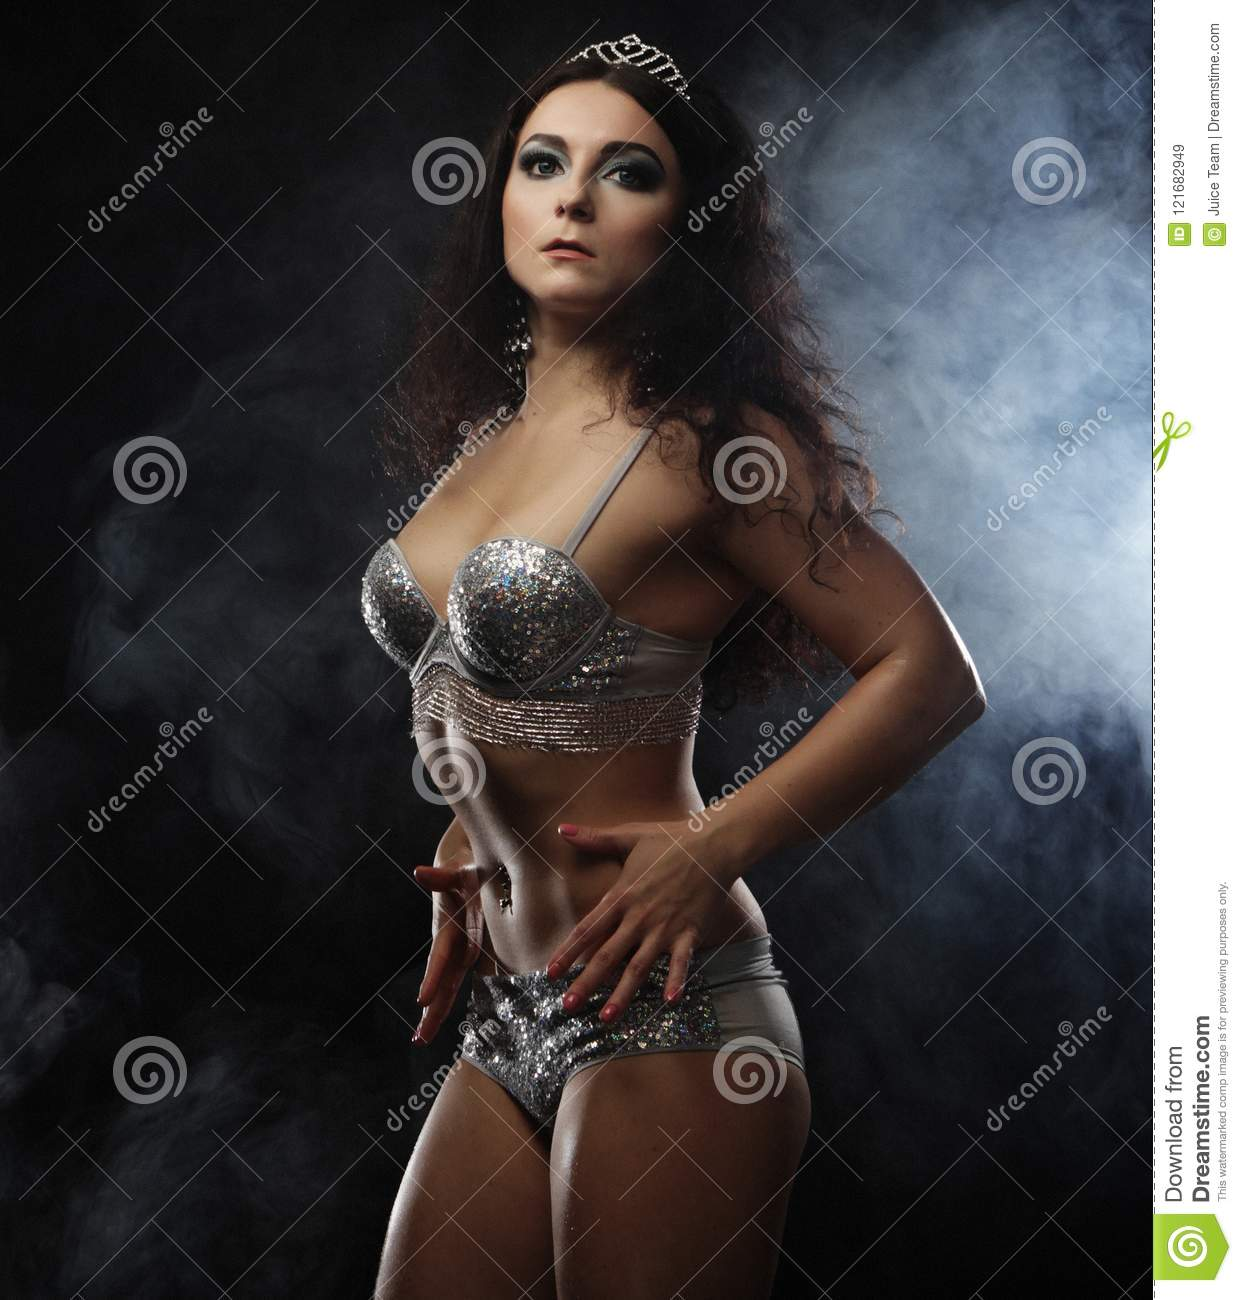 f5d258fd7ca Young Brunette Woman In Lingerie Over Dark Background Stock Image ...